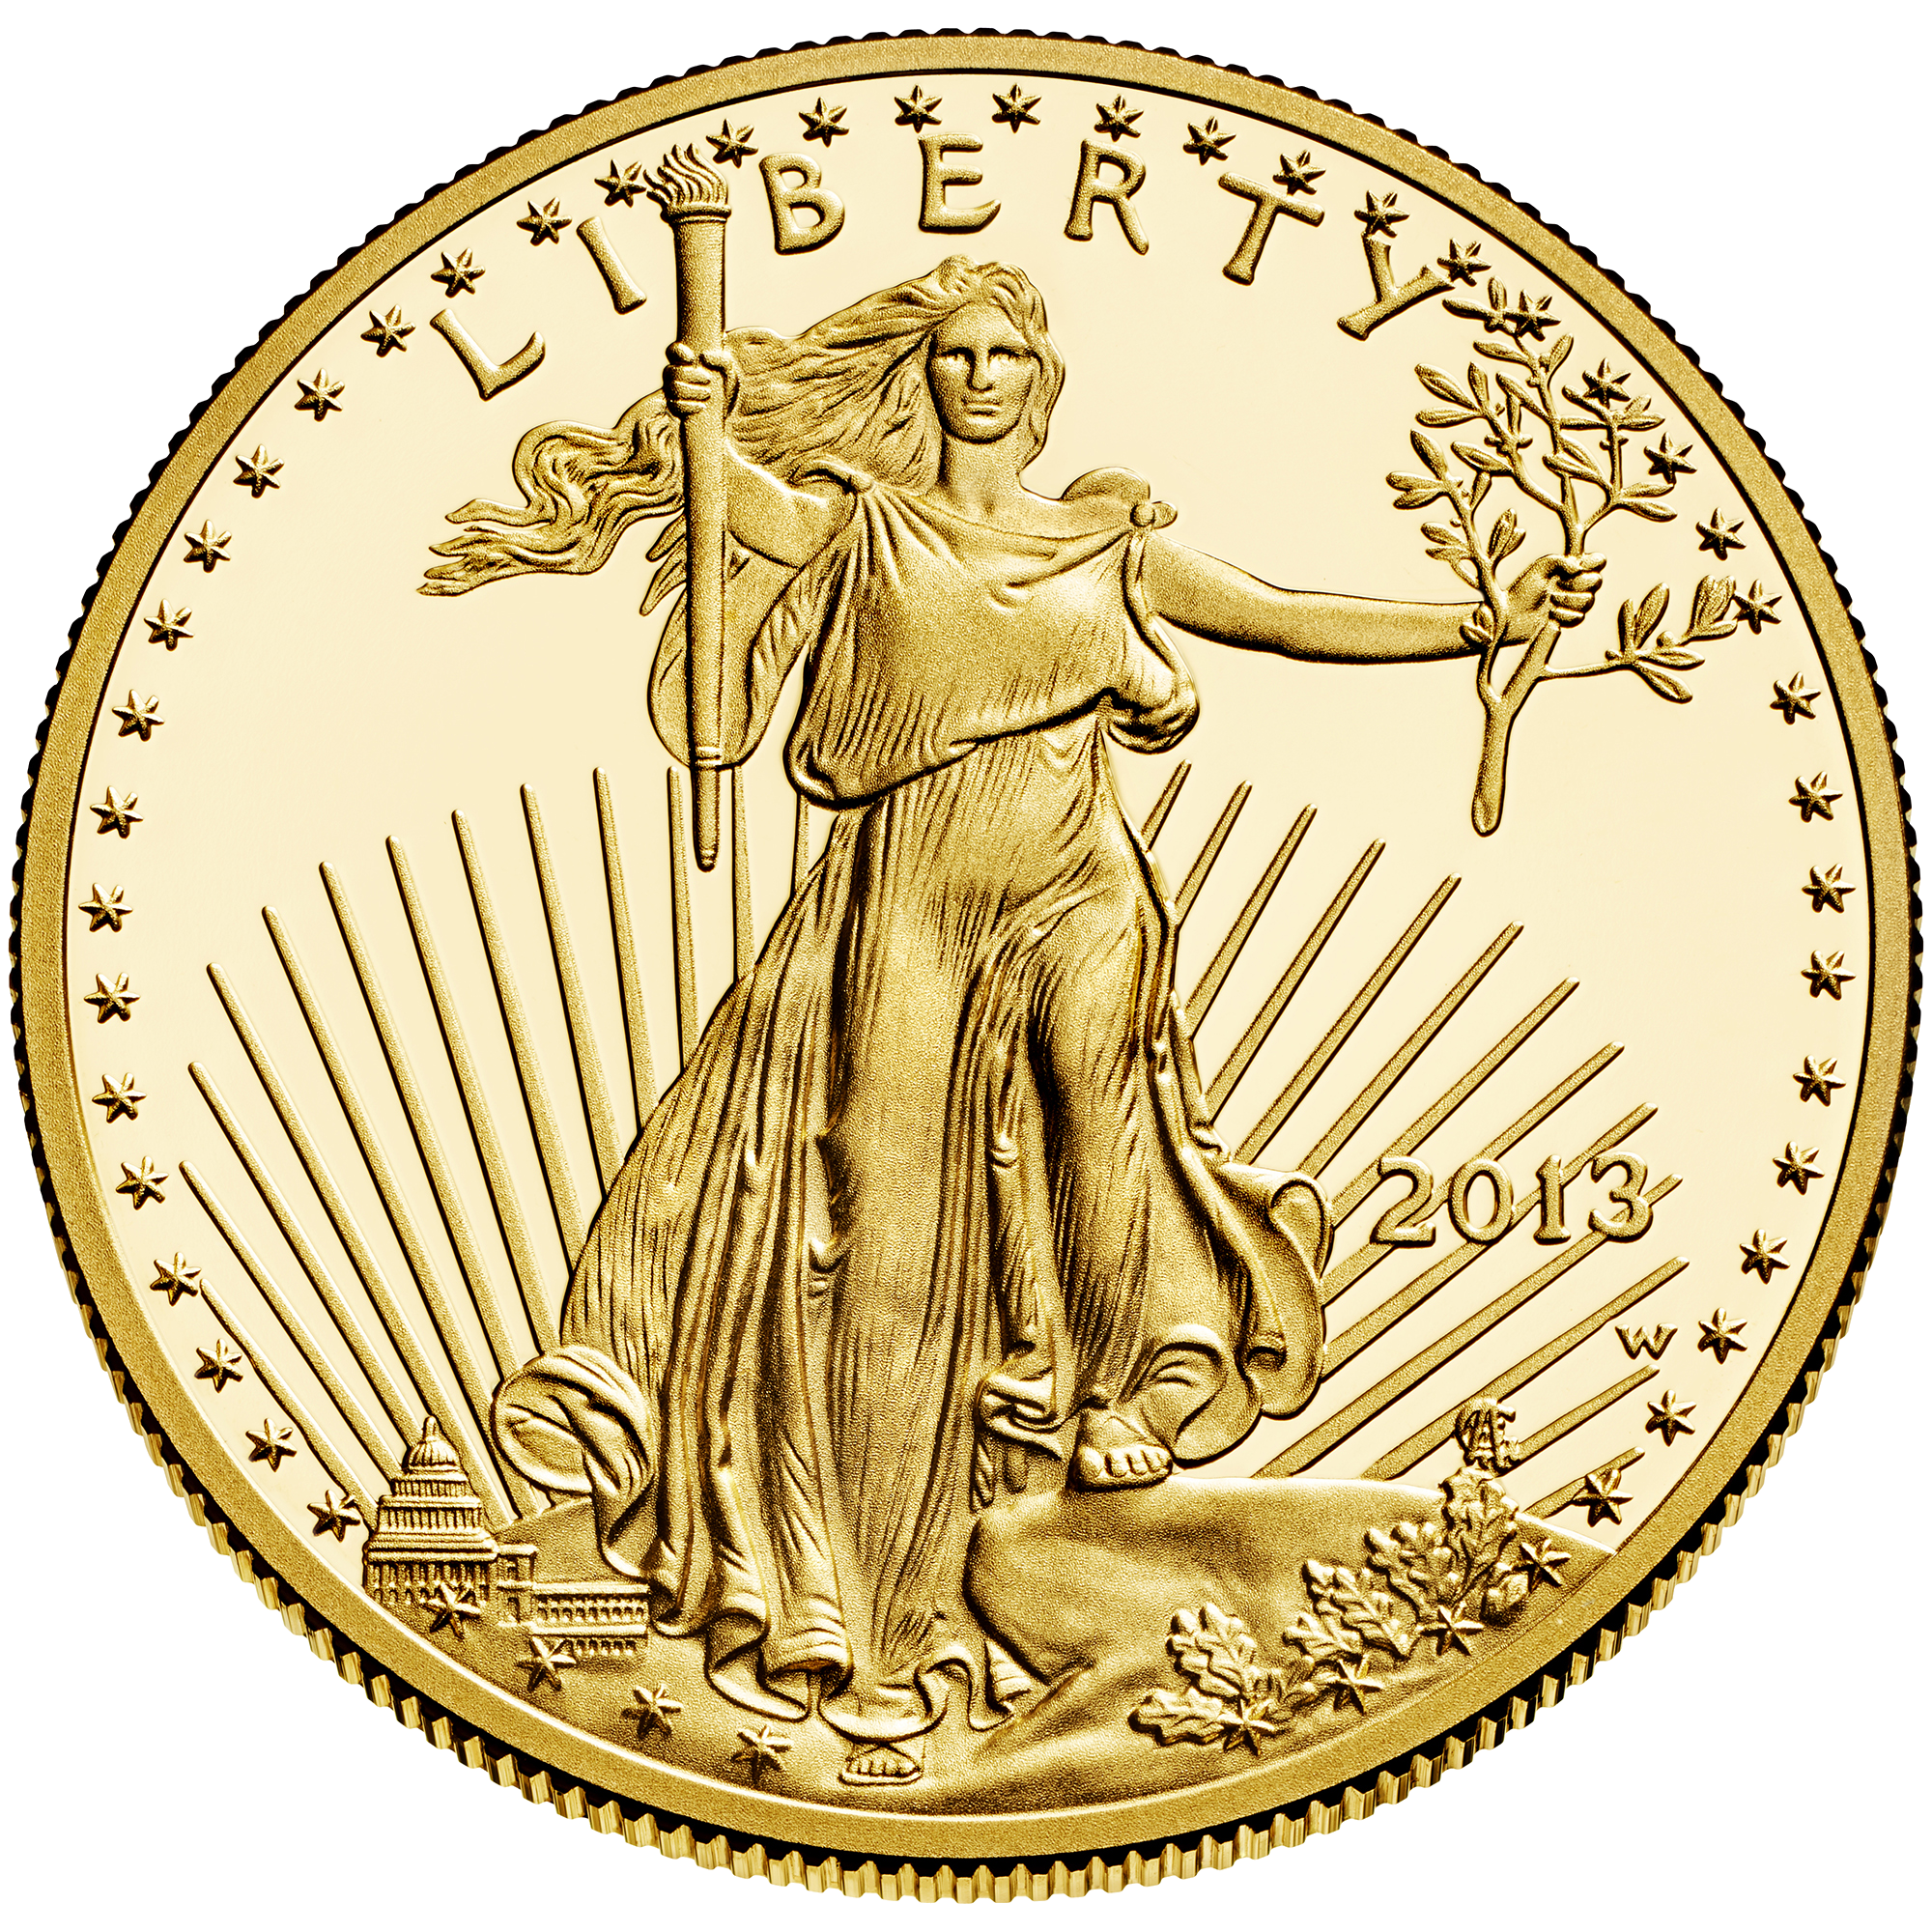 image about Gold Coin Template Printable referred to as American Gold Eagle - Wikipedia